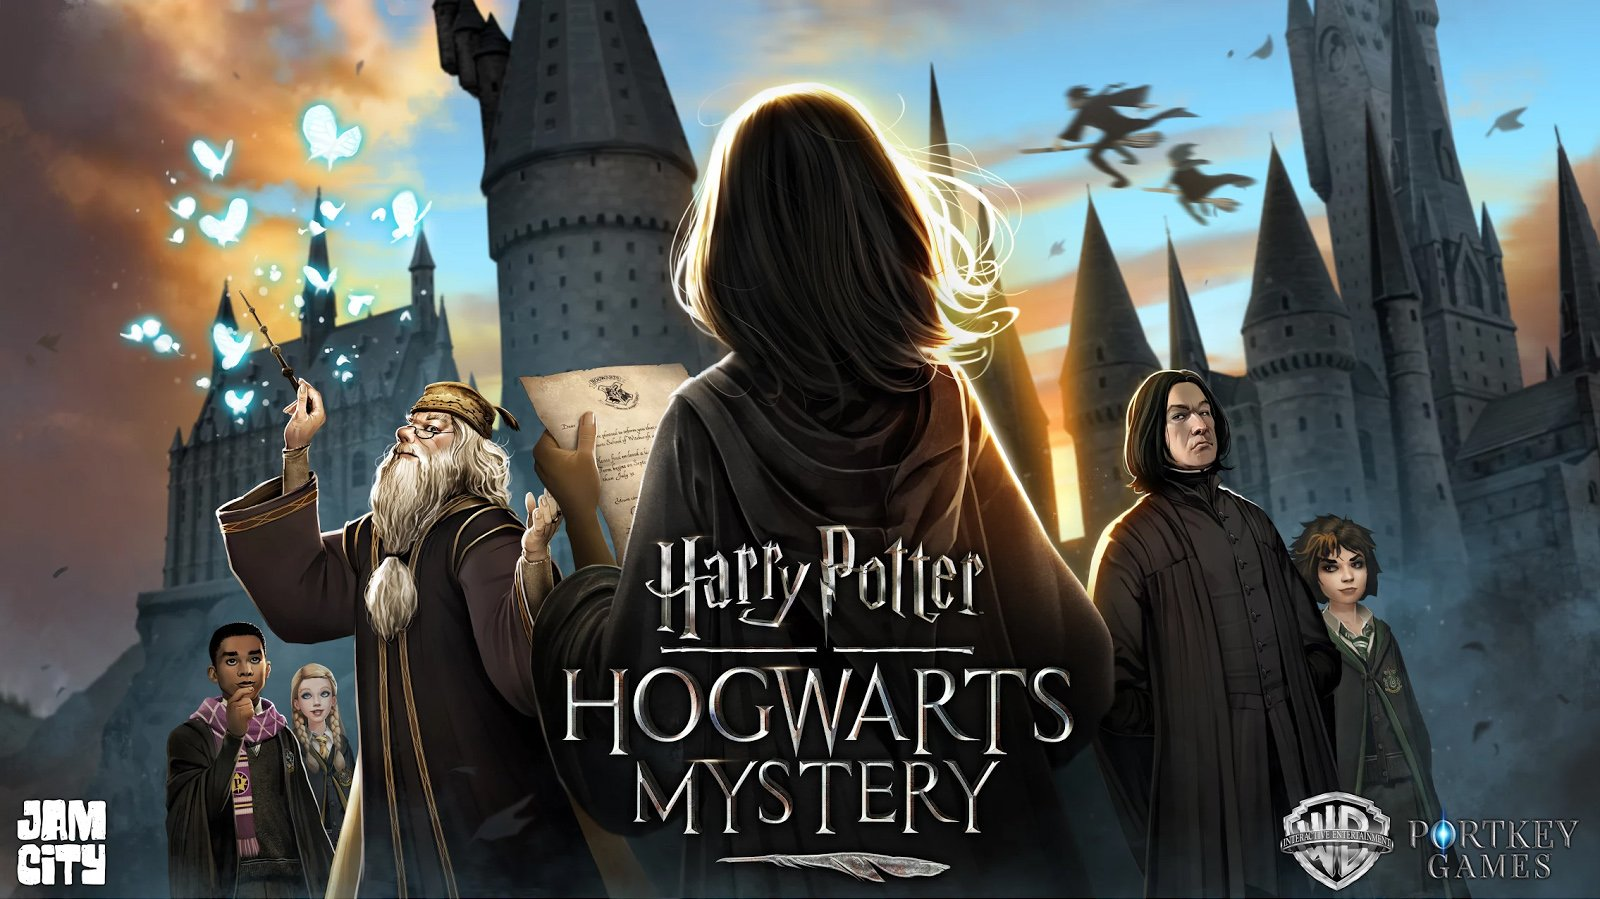 Hogwarts Mystery | assista o 1º trailer do game para celular — Harry Potter